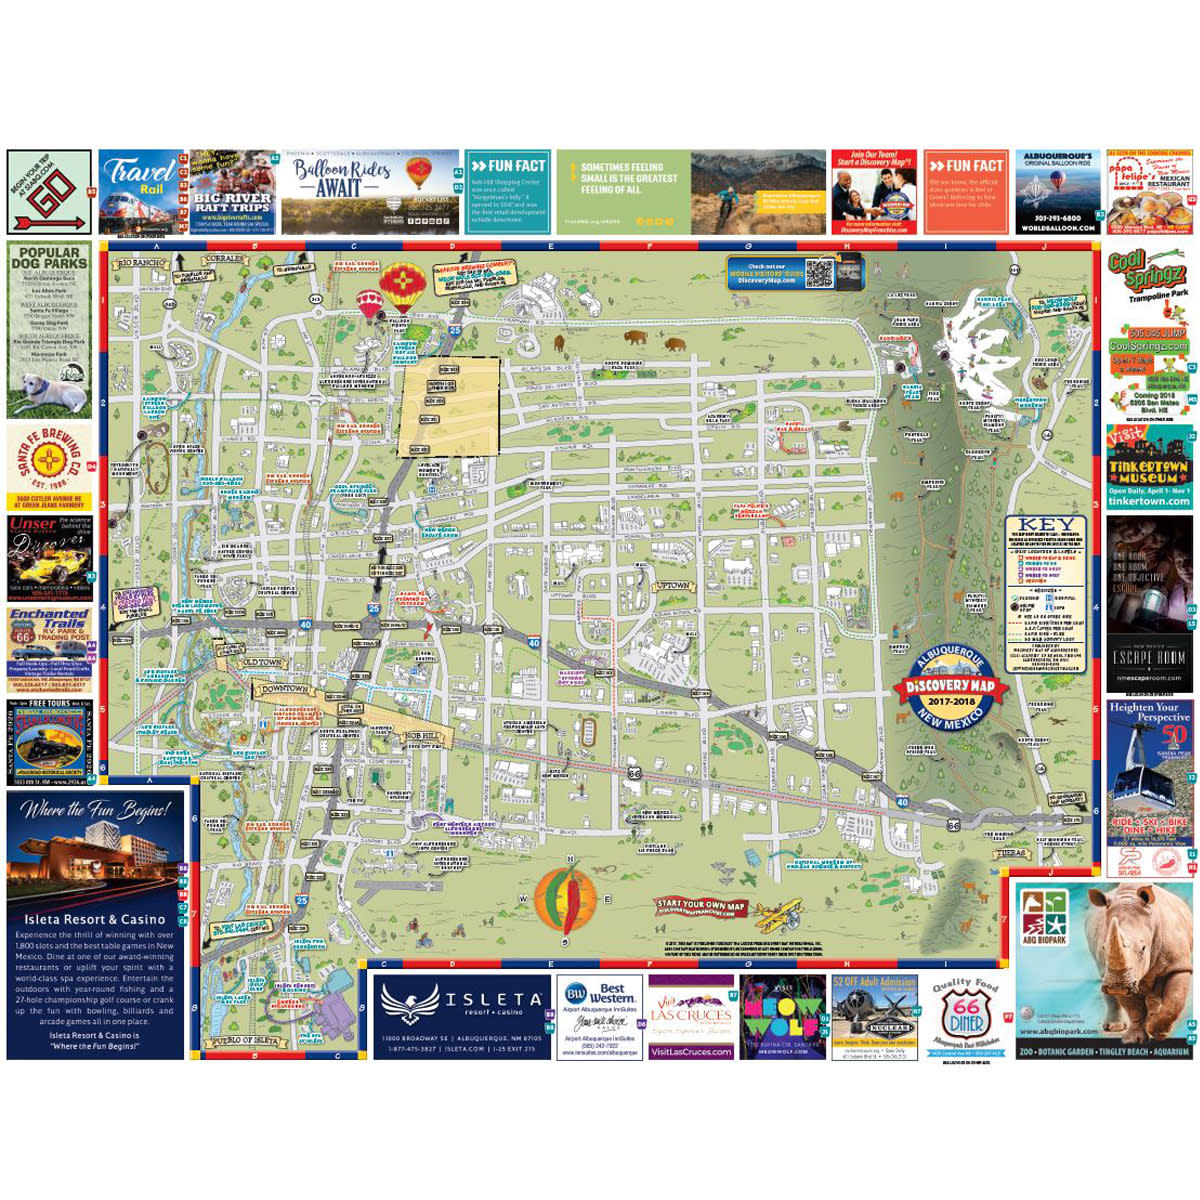 Discovery Map of Albuquerque on